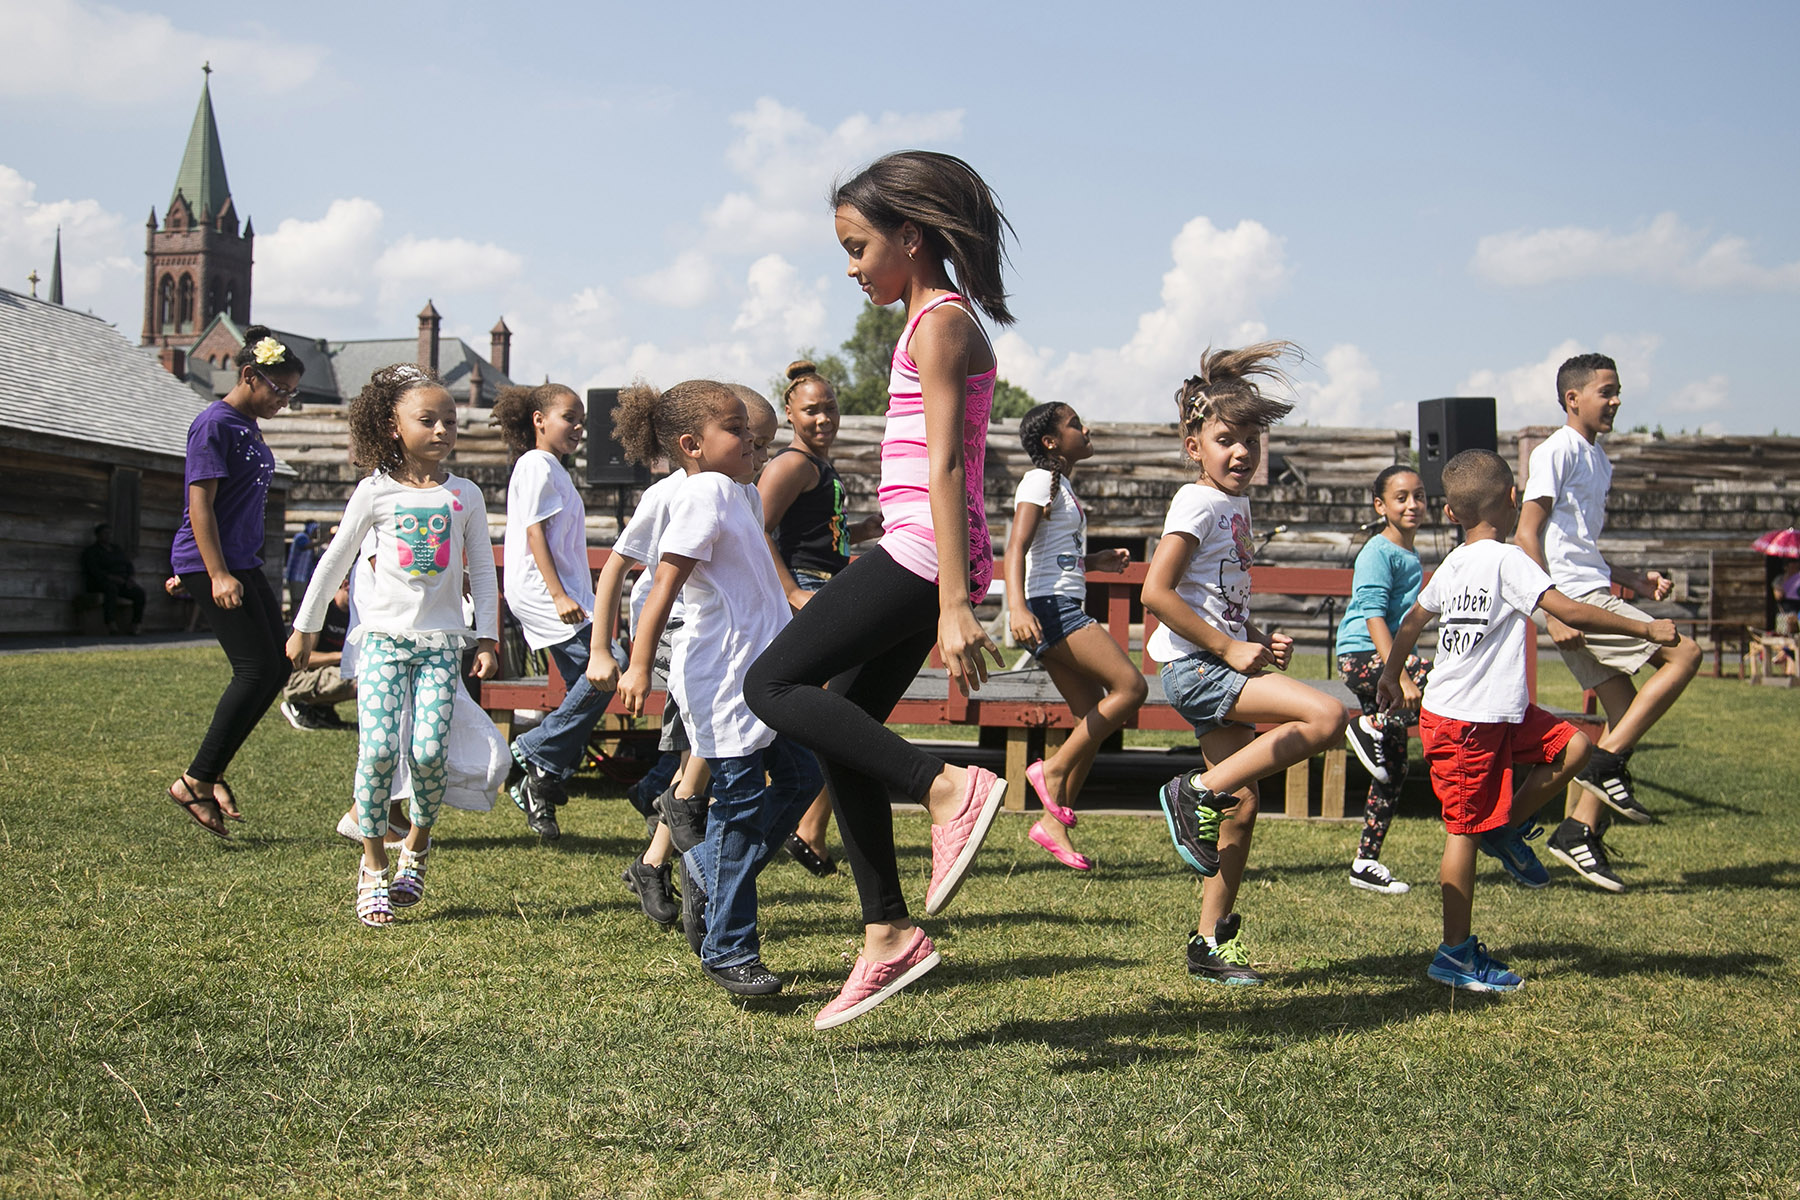 children dancing in grassy area with historic buildings in the background